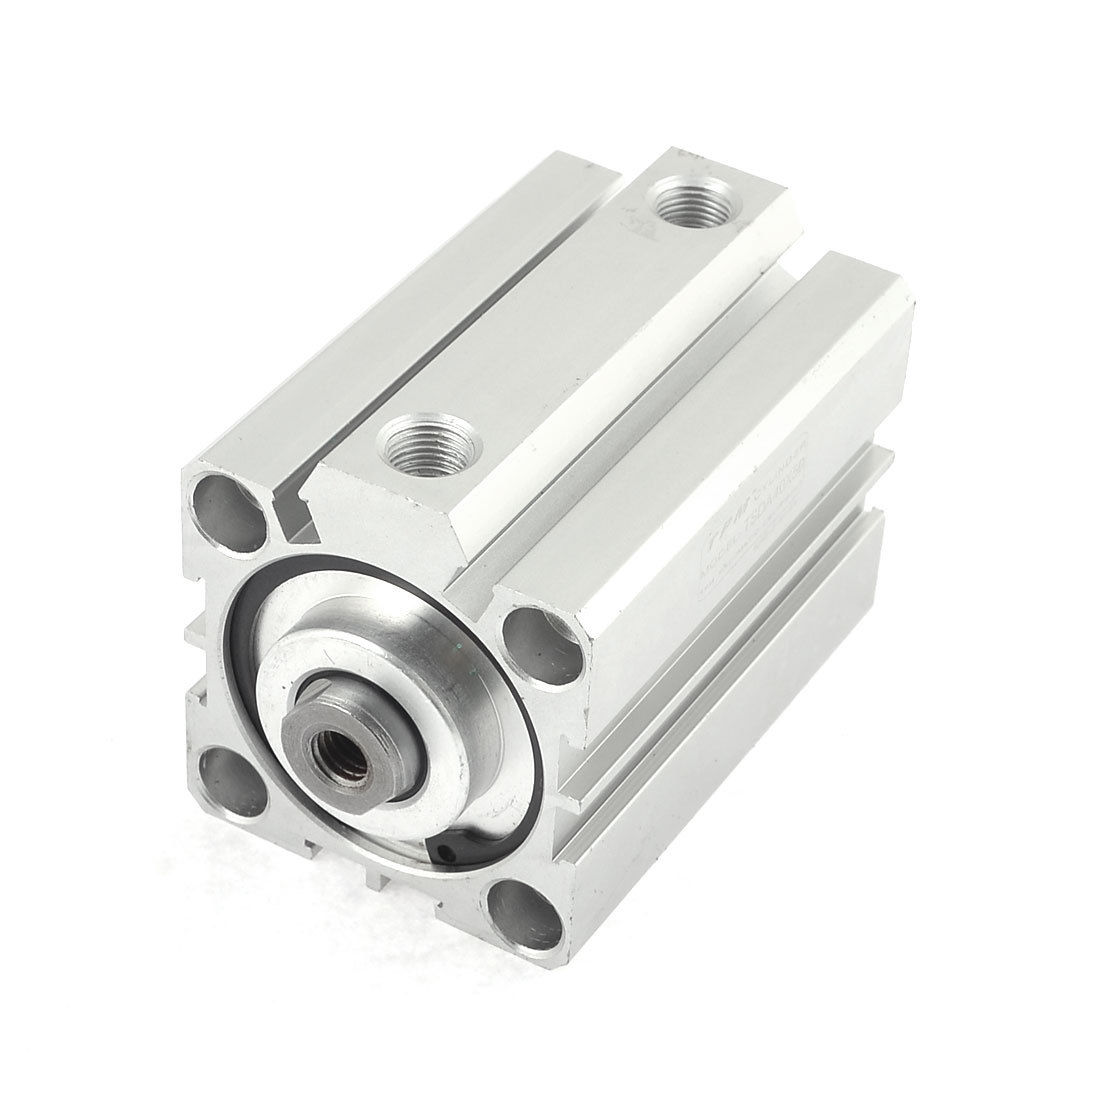 1 Pcs 40mm Bore 70mm Stroke Stainless steel Pneumatic Air Cylinder SDA40-701 Pcs 40mm Bore 70mm Stroke Stainless steel Pneumatic Air Cylinder SDA40-70